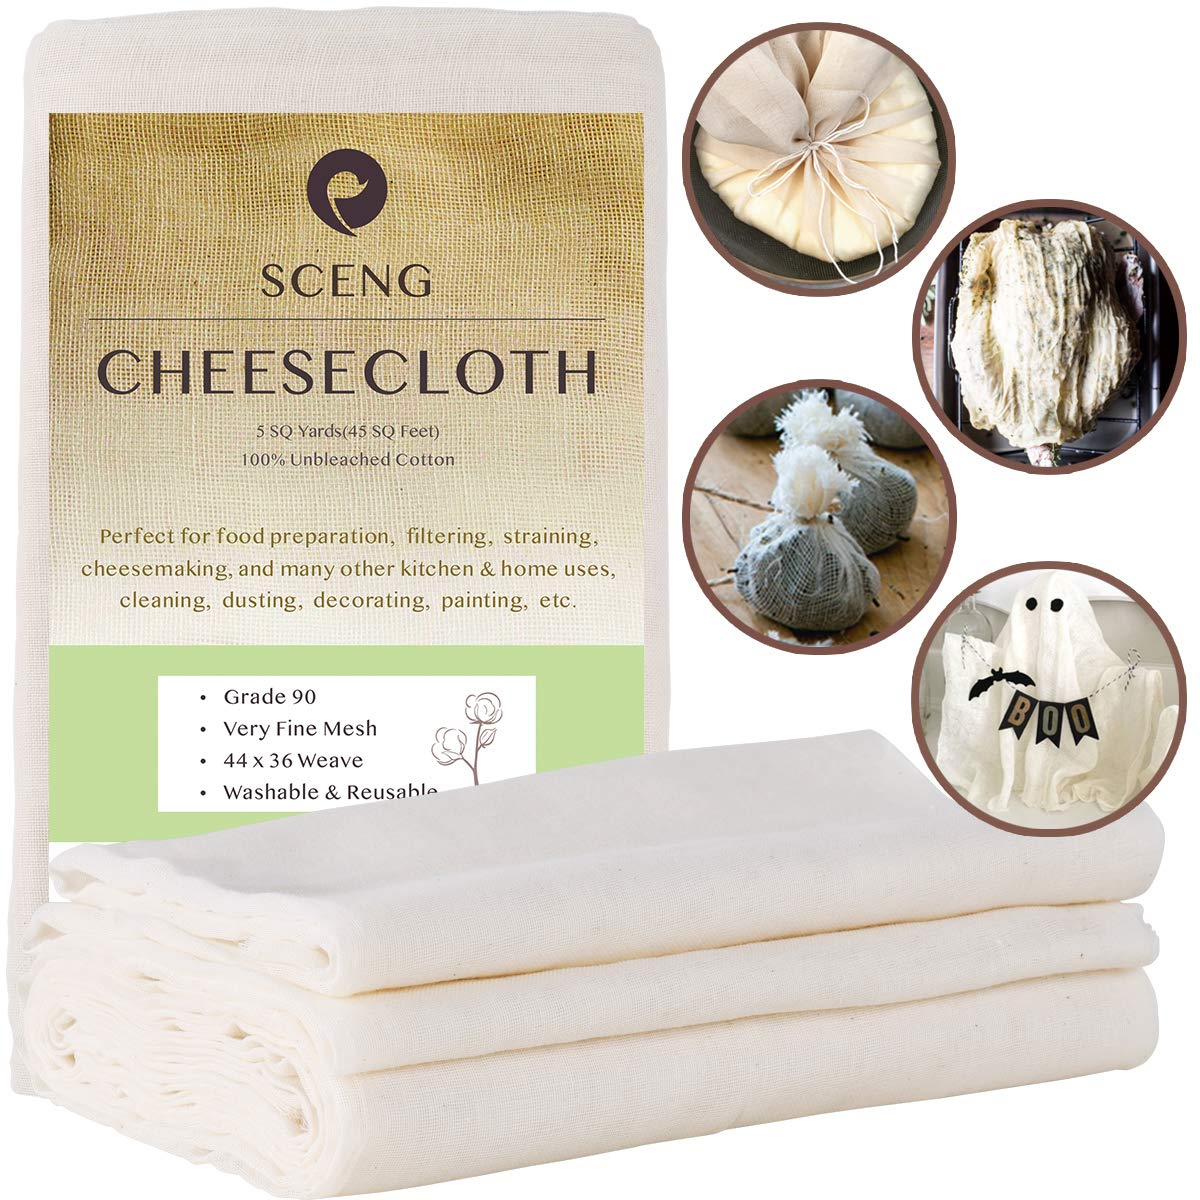 Cheesecloth, Grade 90, 45 Sq Feet, Reusable, 100% Unbleached Cotton Fabric, Ultra Fine Cheesecloth for Cooking - Nut Milk Bag, Strainer, Filter (Grade 90-5Yards) by S.CENG